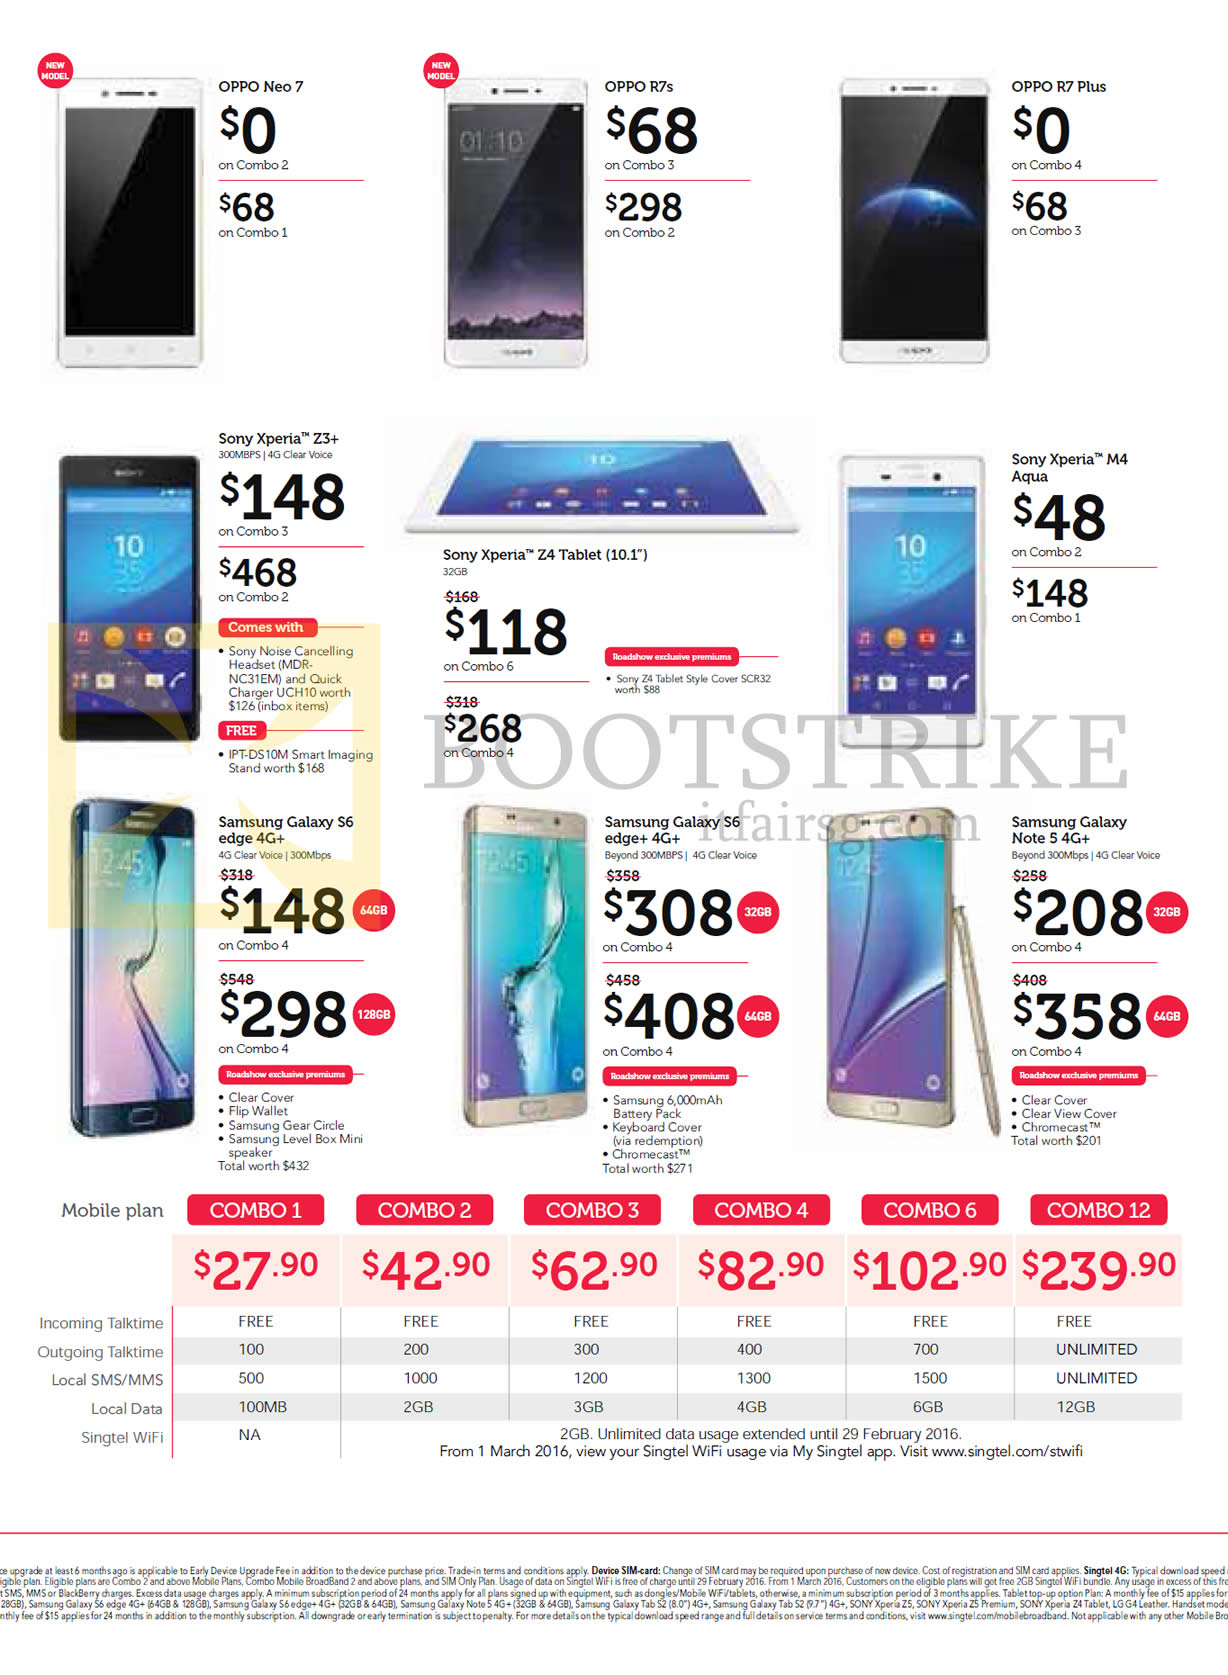 SITEX 2015 price list image brochure of Singtel Mobile Phones Oppo Neo 7, R7s, R7 Plus, Sony Xperia Z3 Plus, M4 Aqua, Samsung Galaxy S6 Edge, S6 Edge Plus, Note 5, Mobile Plans Combo 1,2,3,4,6,12